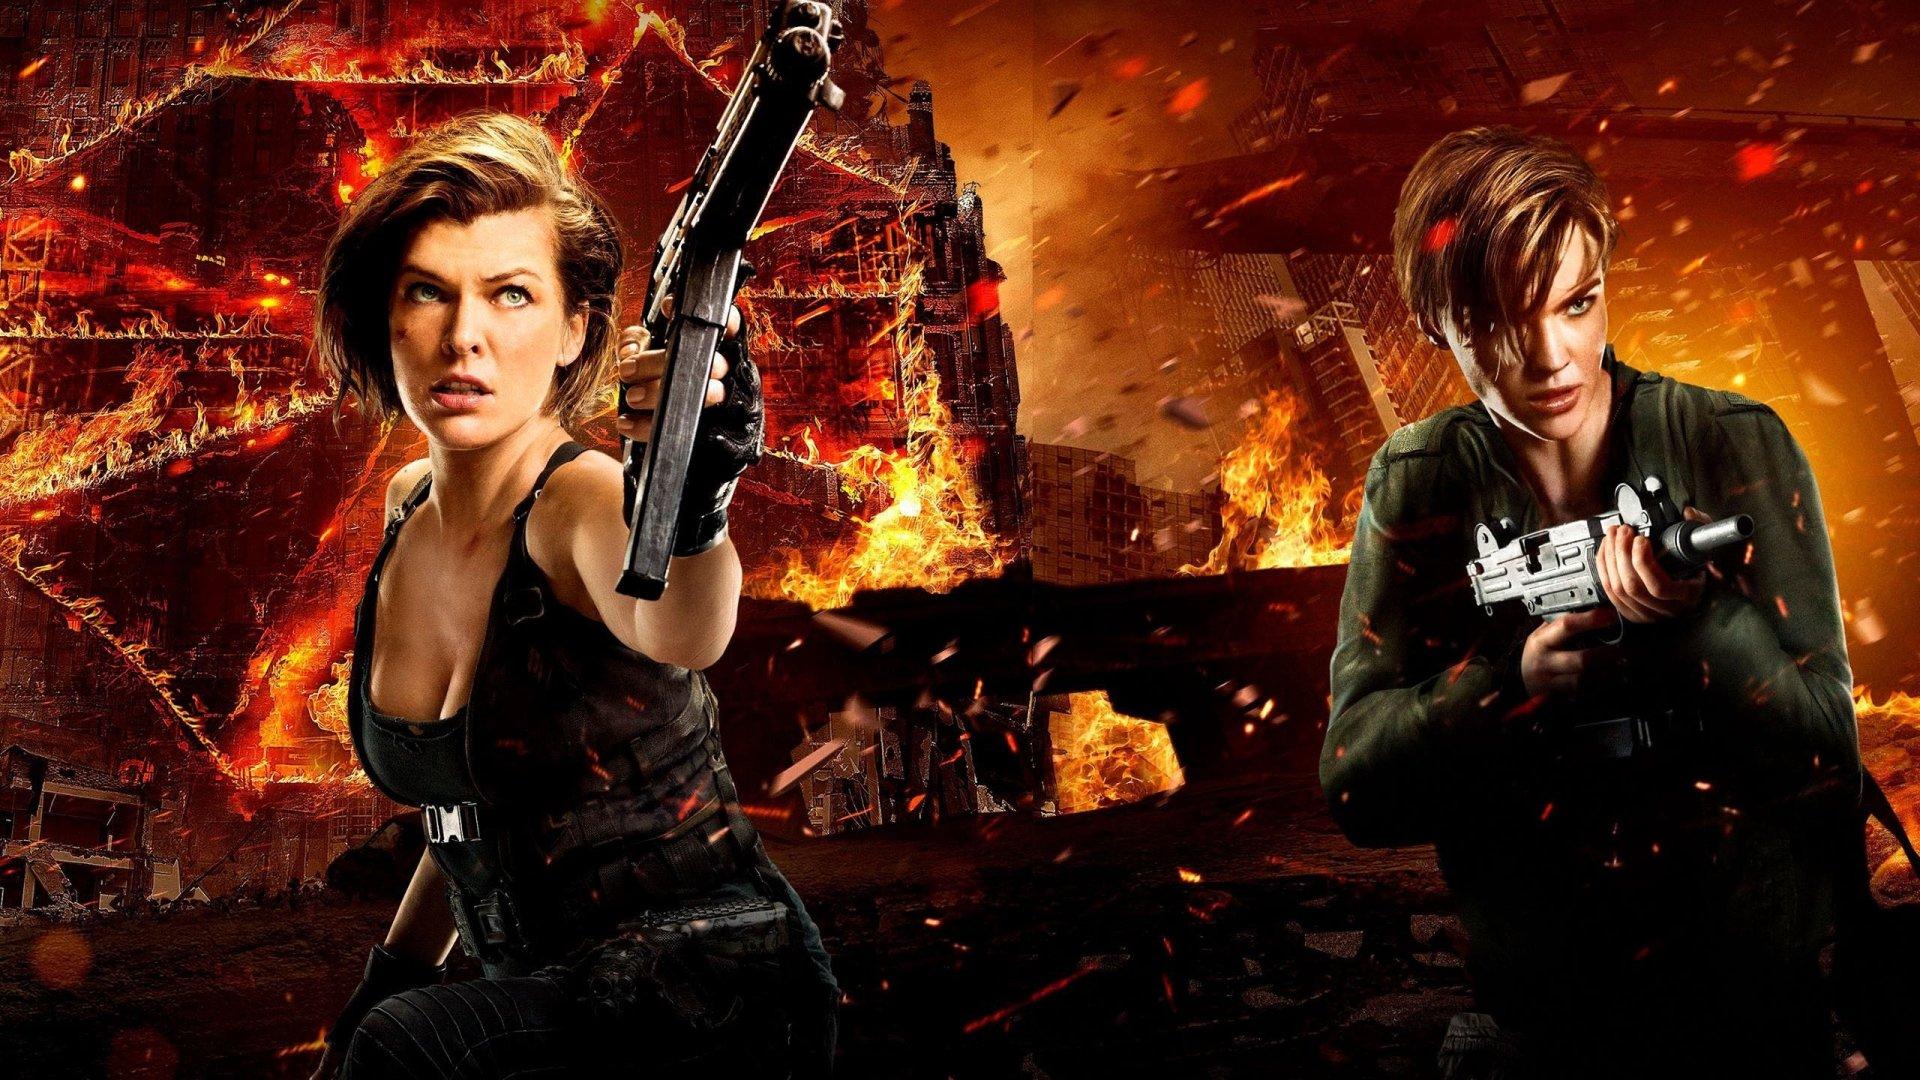 Movie - Resident Evil: The Final Chapter  Milla Jovovich Ruby Rose Alice (Resident Evil) Abigail (Resident Evil) Wallpaper